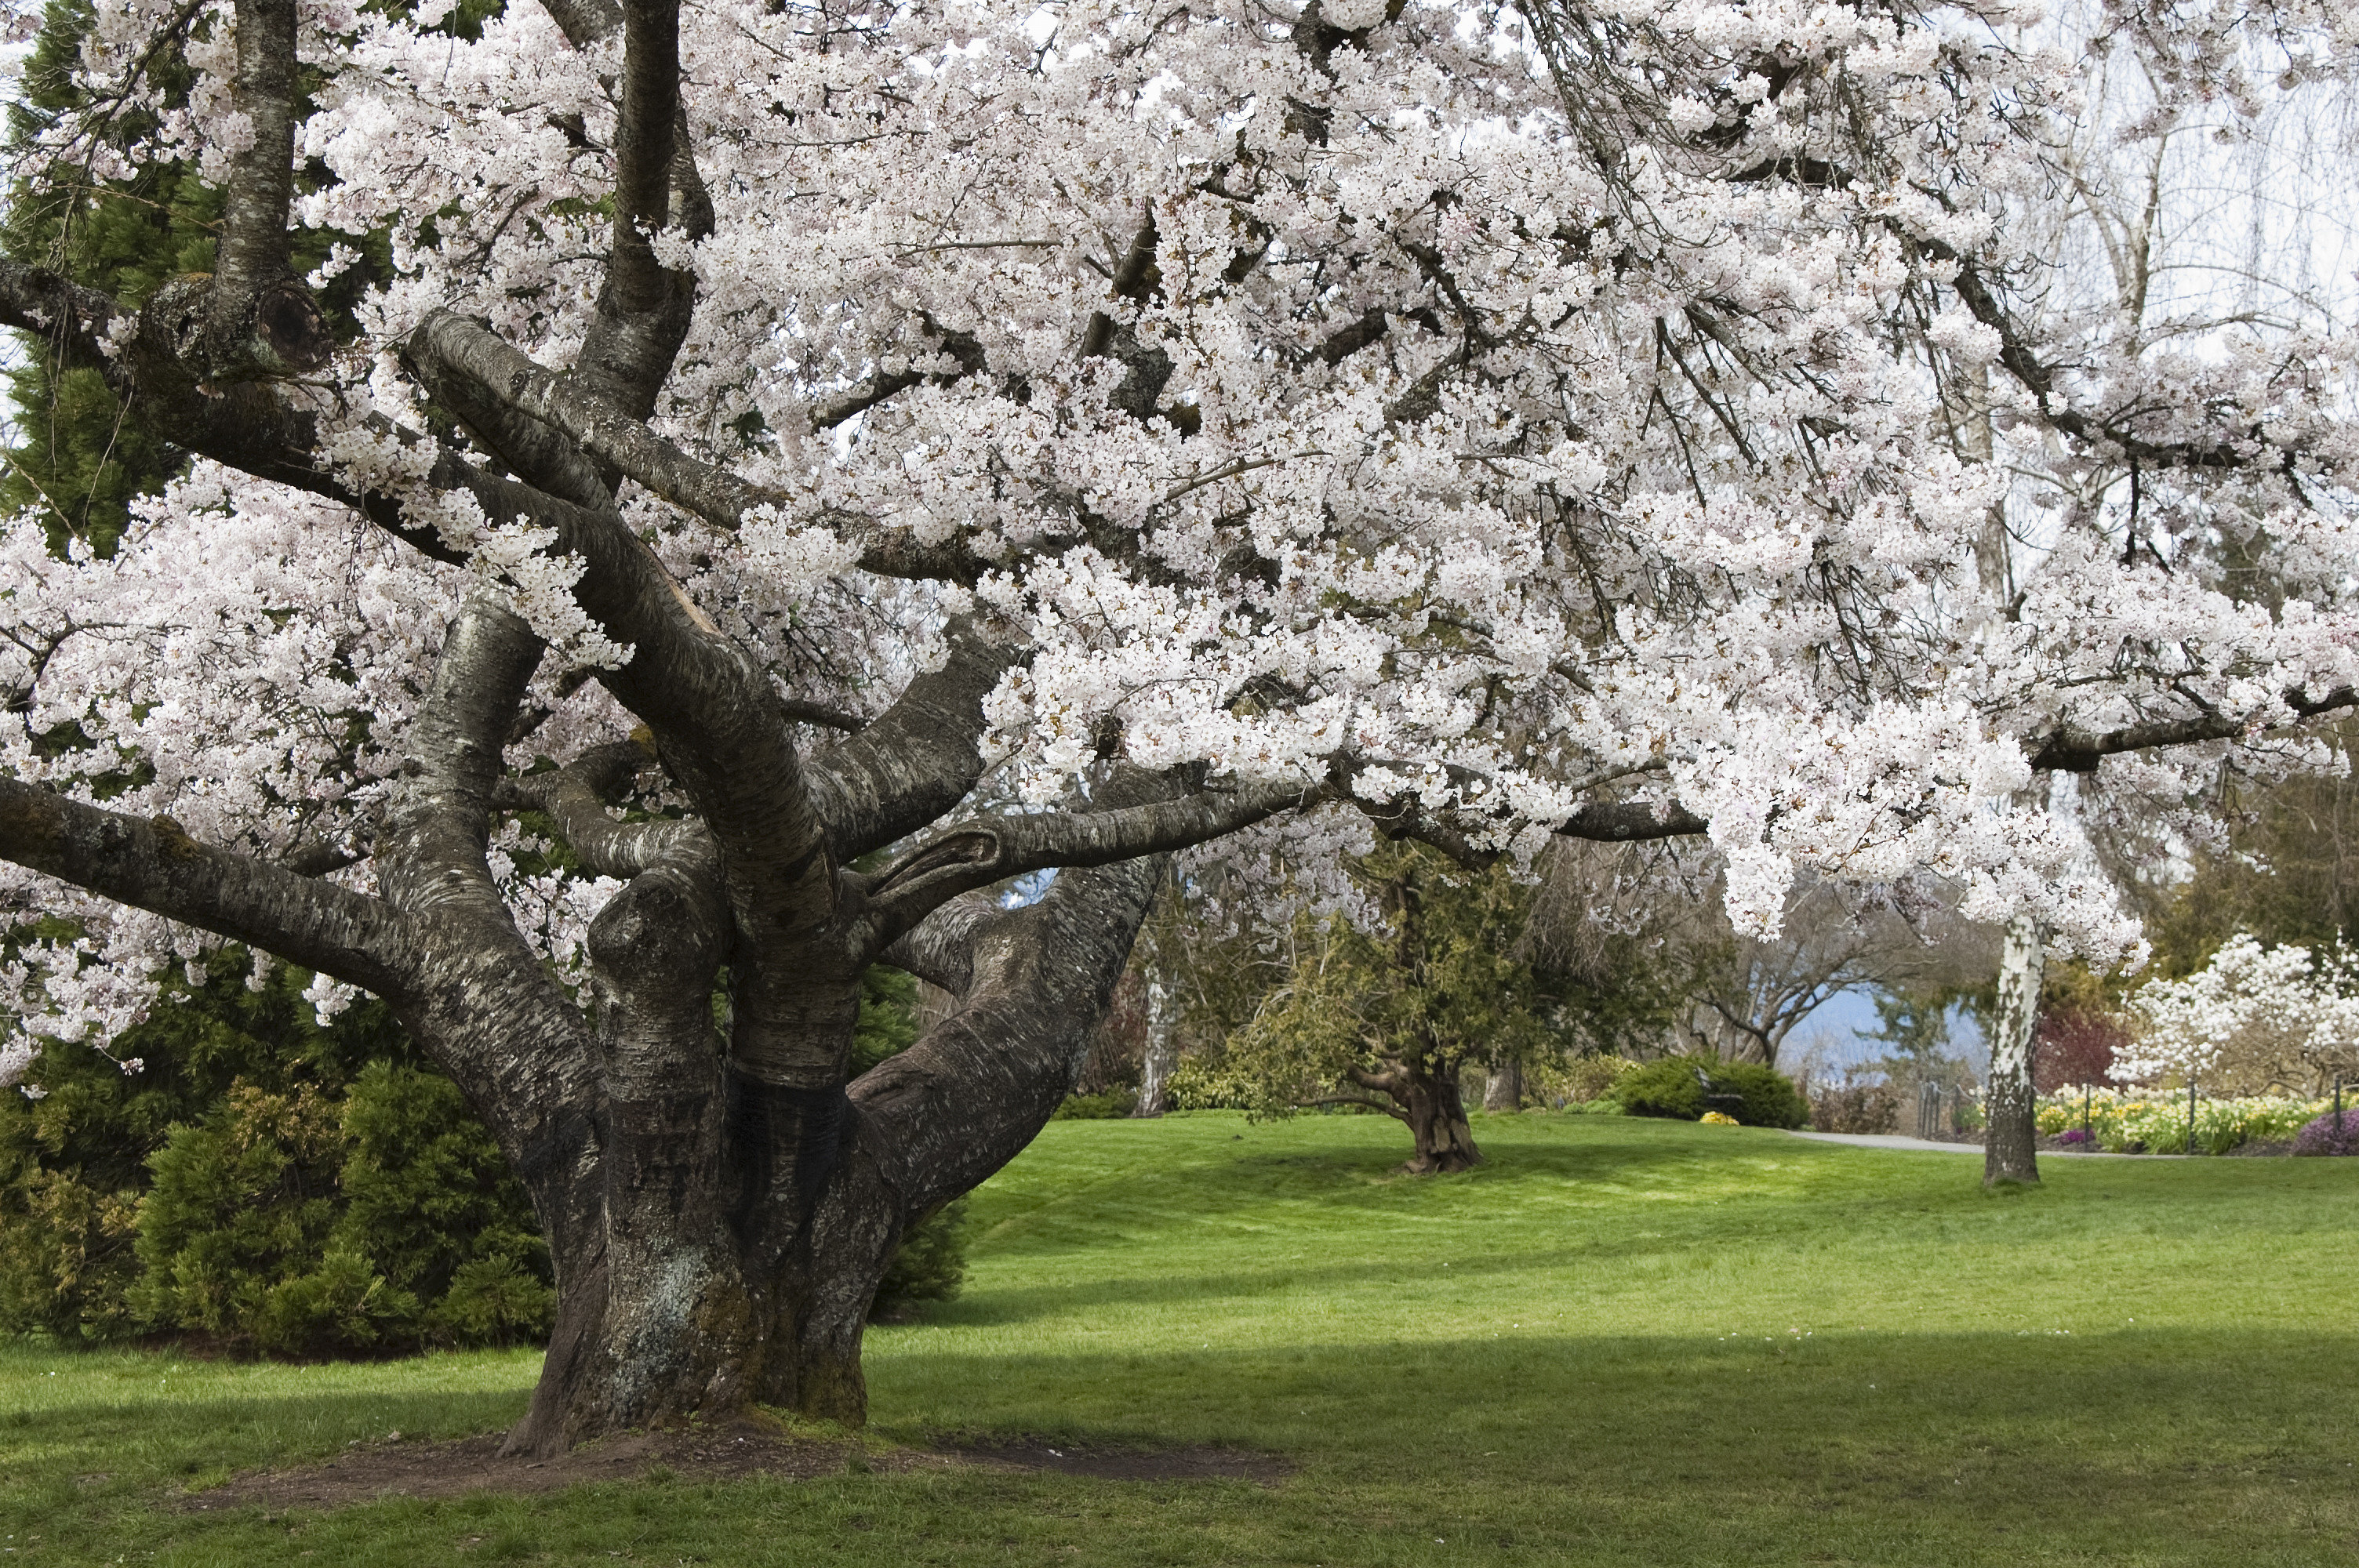 Offbeat tree grass outdoor flower plant field blossom cherry blossom botany park spring oak lush